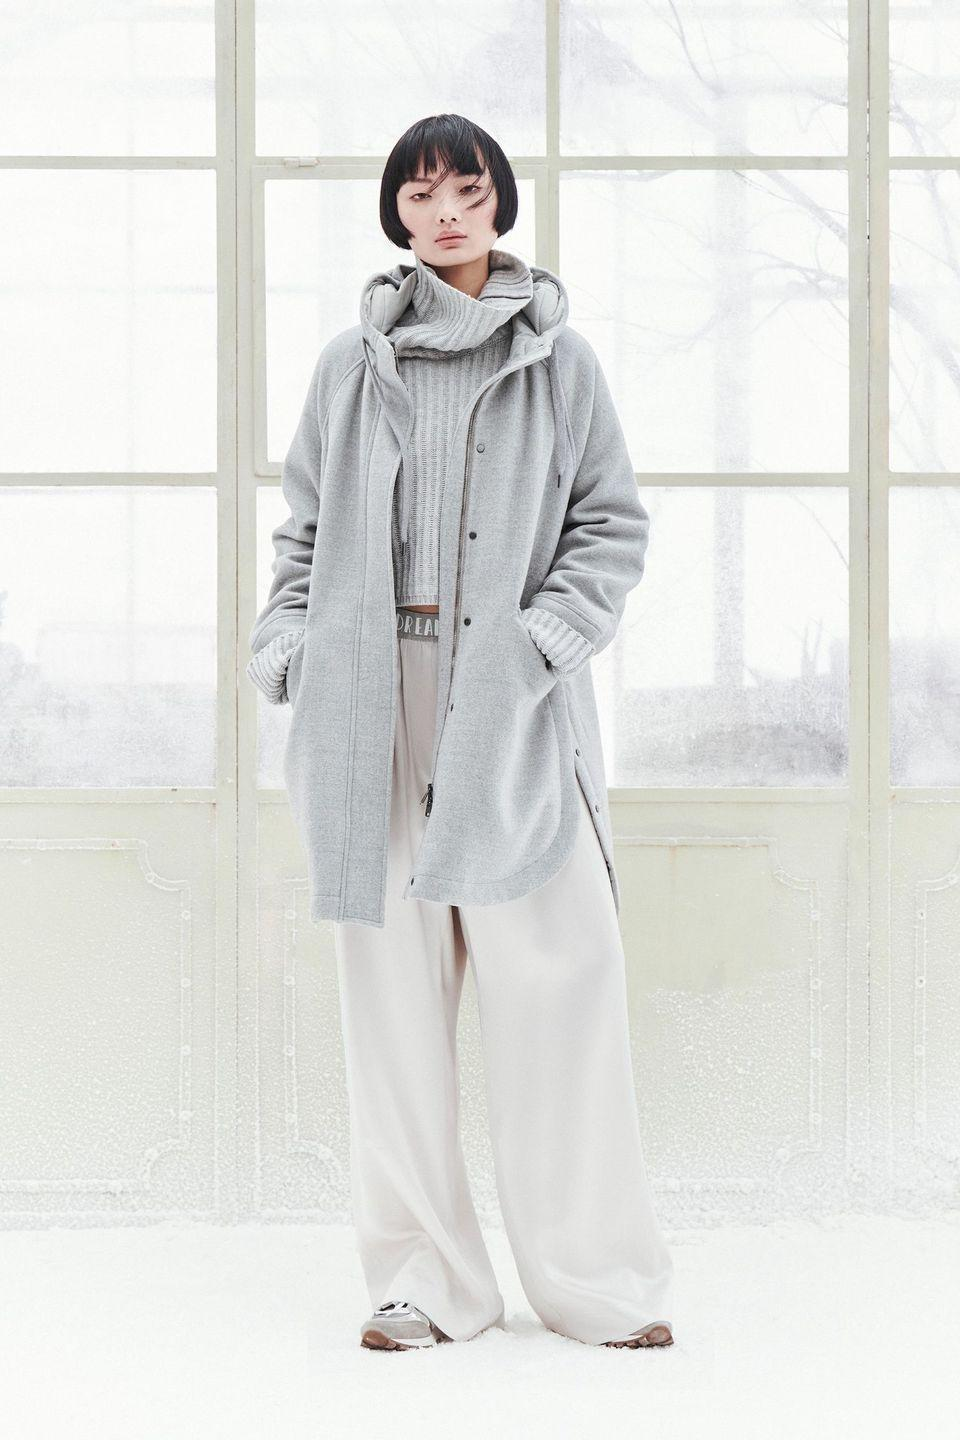 <p>Brunello Cucinelli is no stranger to the luxe leisure trend that has swept the fashion industry. To wit: The Italian designer built his brand on tailored double-faced cashmere tops and cardigans, along with mohair sweaters and coats. He has also consistently offered tailored drawstring trousers. Where others are now just presenting pieces inspired by pandemic life, Cucinelli was ahead of the curve. As a result, his fall 2021 collection—comprised of his stalwarts in subtle shades of brown, beige, cream, and gray—were miles ahead of the simple ribbed knit dresses that sprung up in most presentations this season. Indeed, the proportions of his pieces was a masterclass, the mixing textures was sublime, and the addition of crochet styles were a fun surprise.—<em>Barry Samaha</em></p>